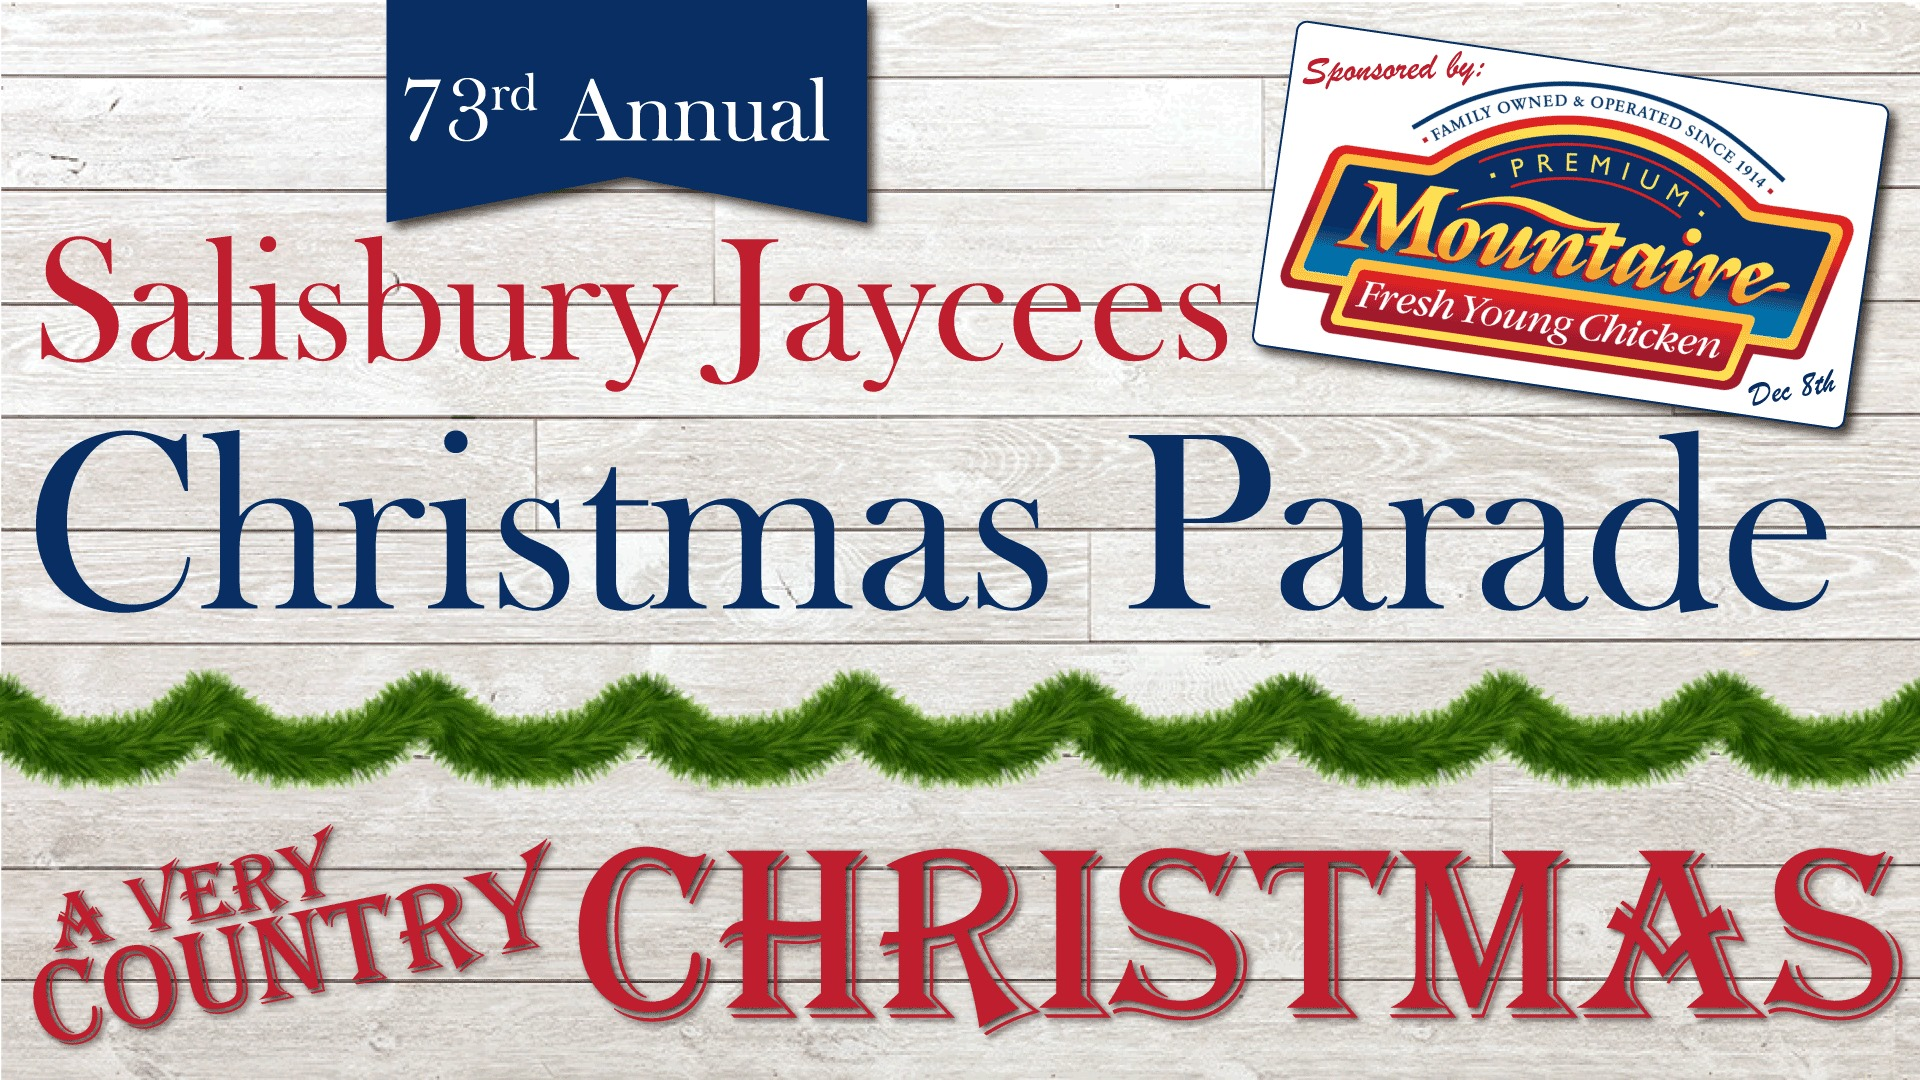 Salisbury Christmas Parade 2020 Mountaire Farms Presents 73rd Salisbury Jaycees Christmas Parade